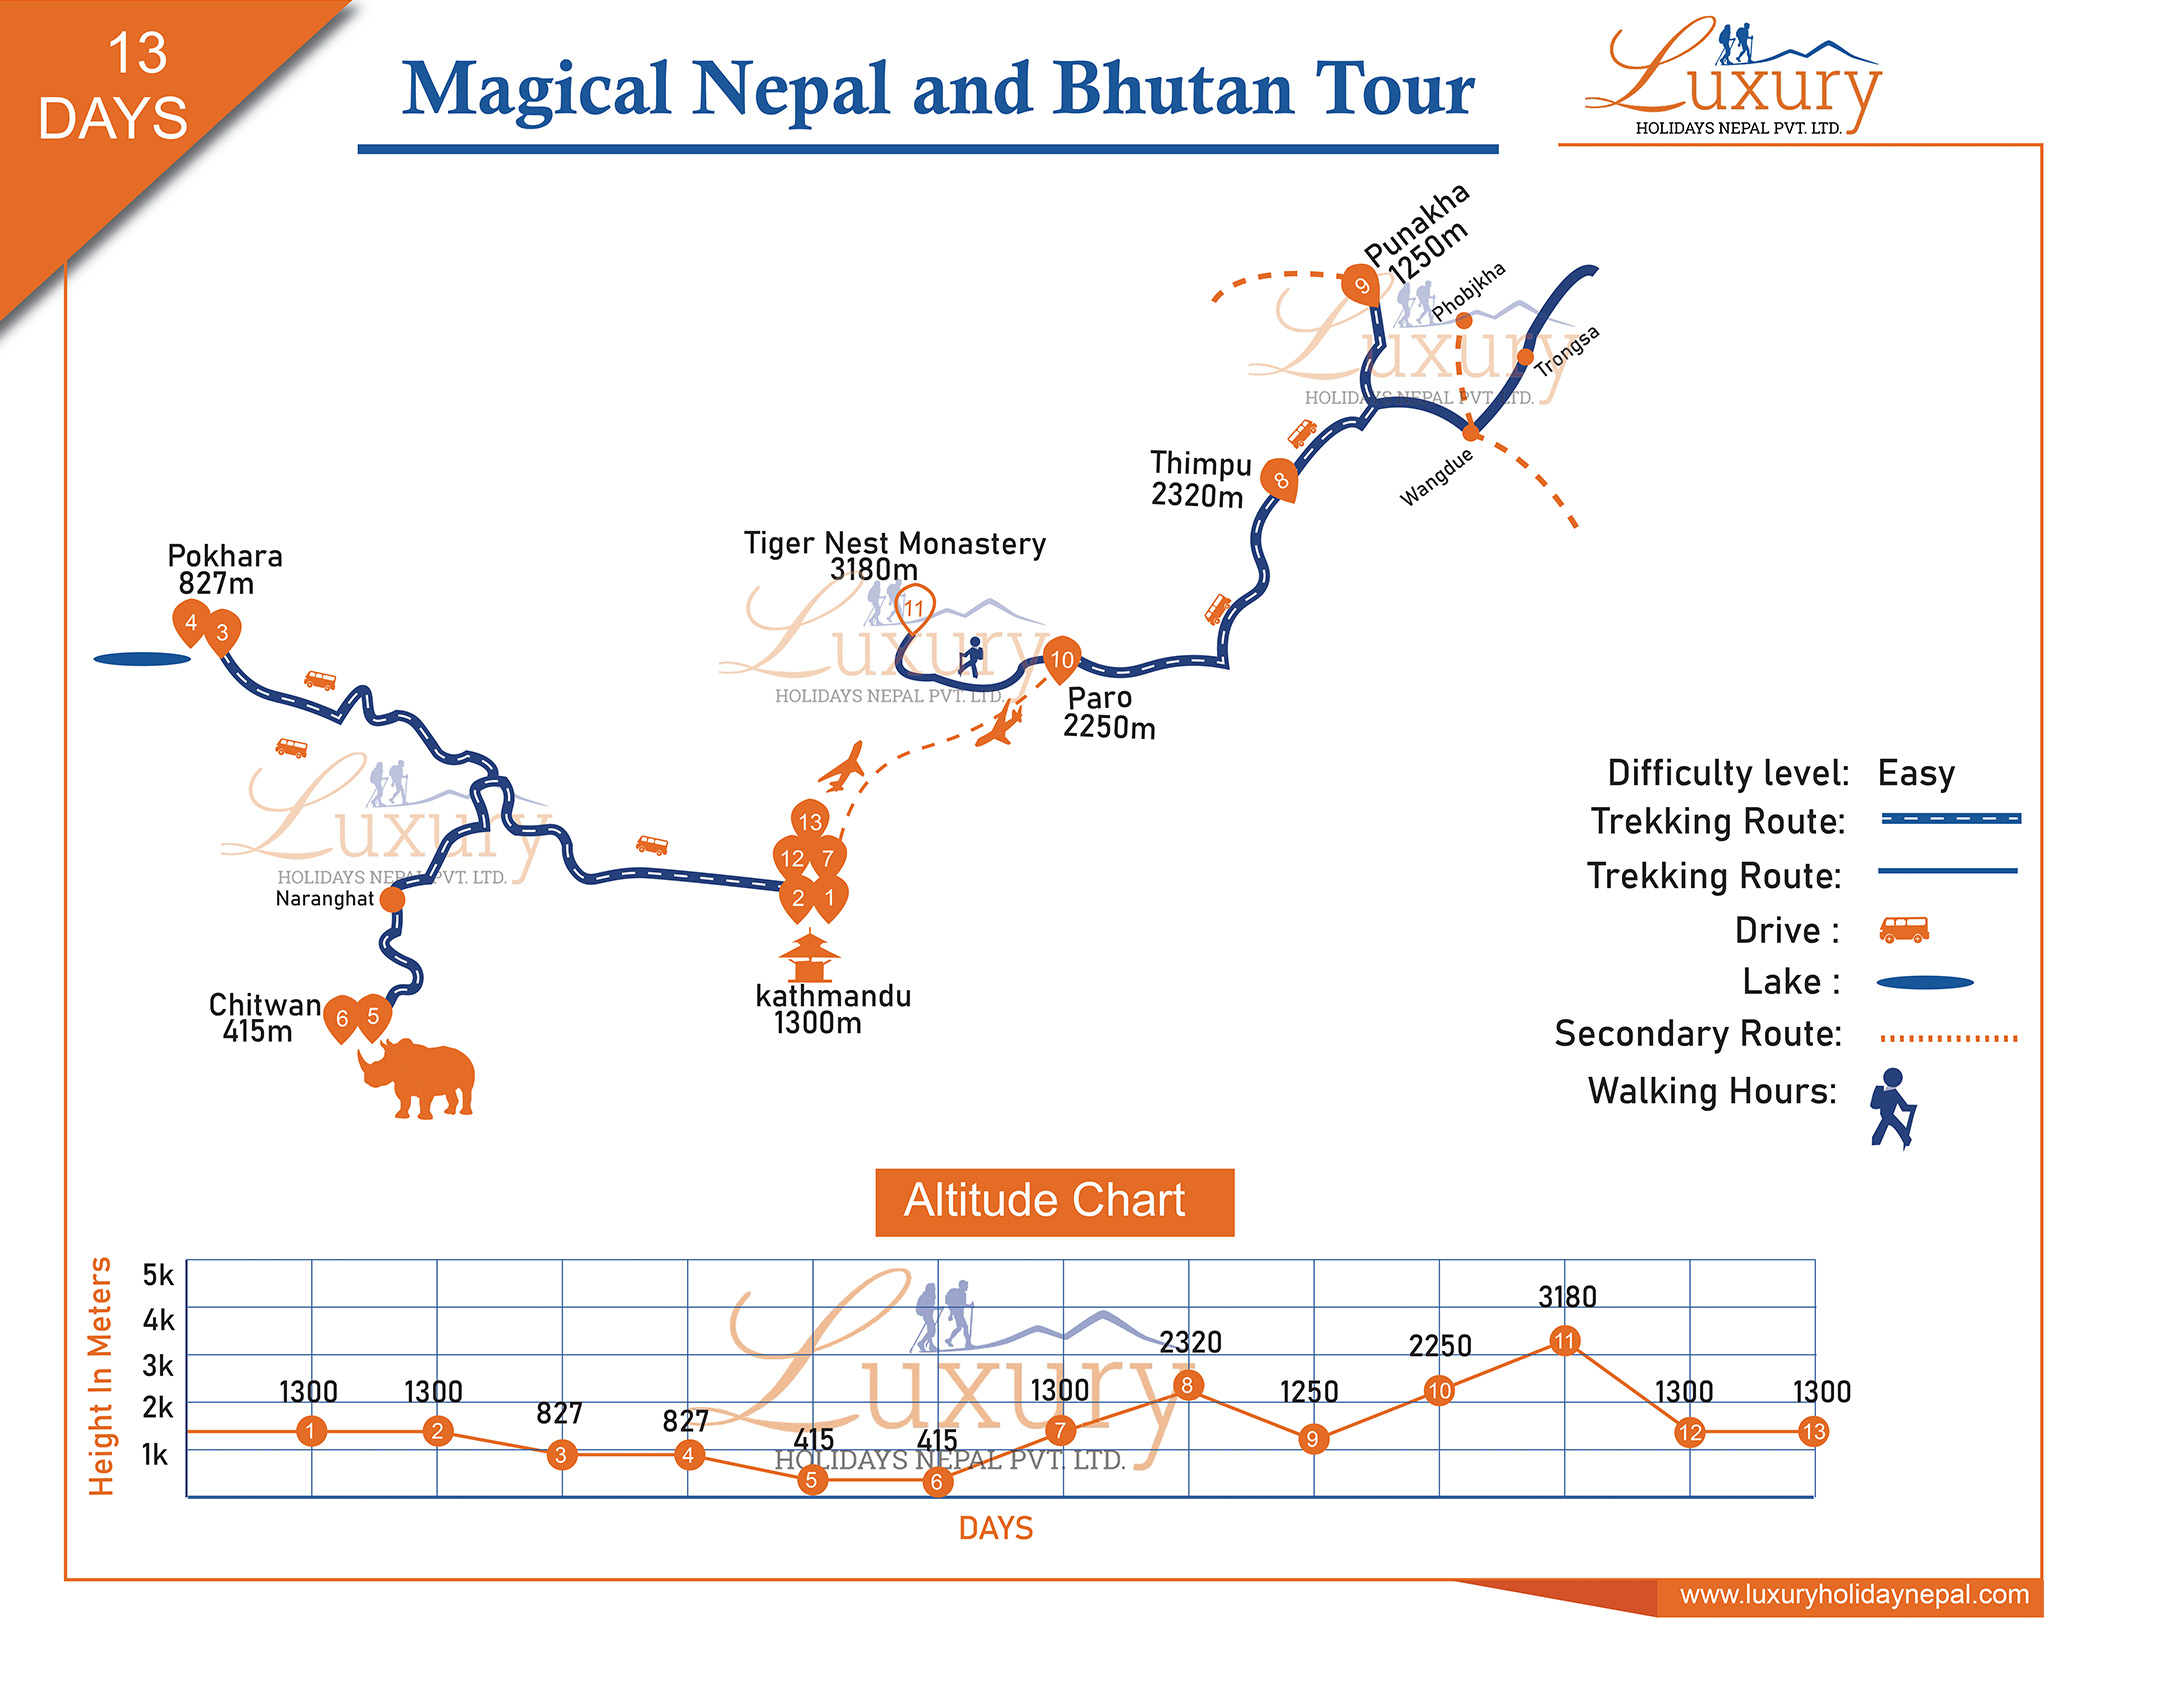 Magical Nepal and Bhutan Tour Trip Map